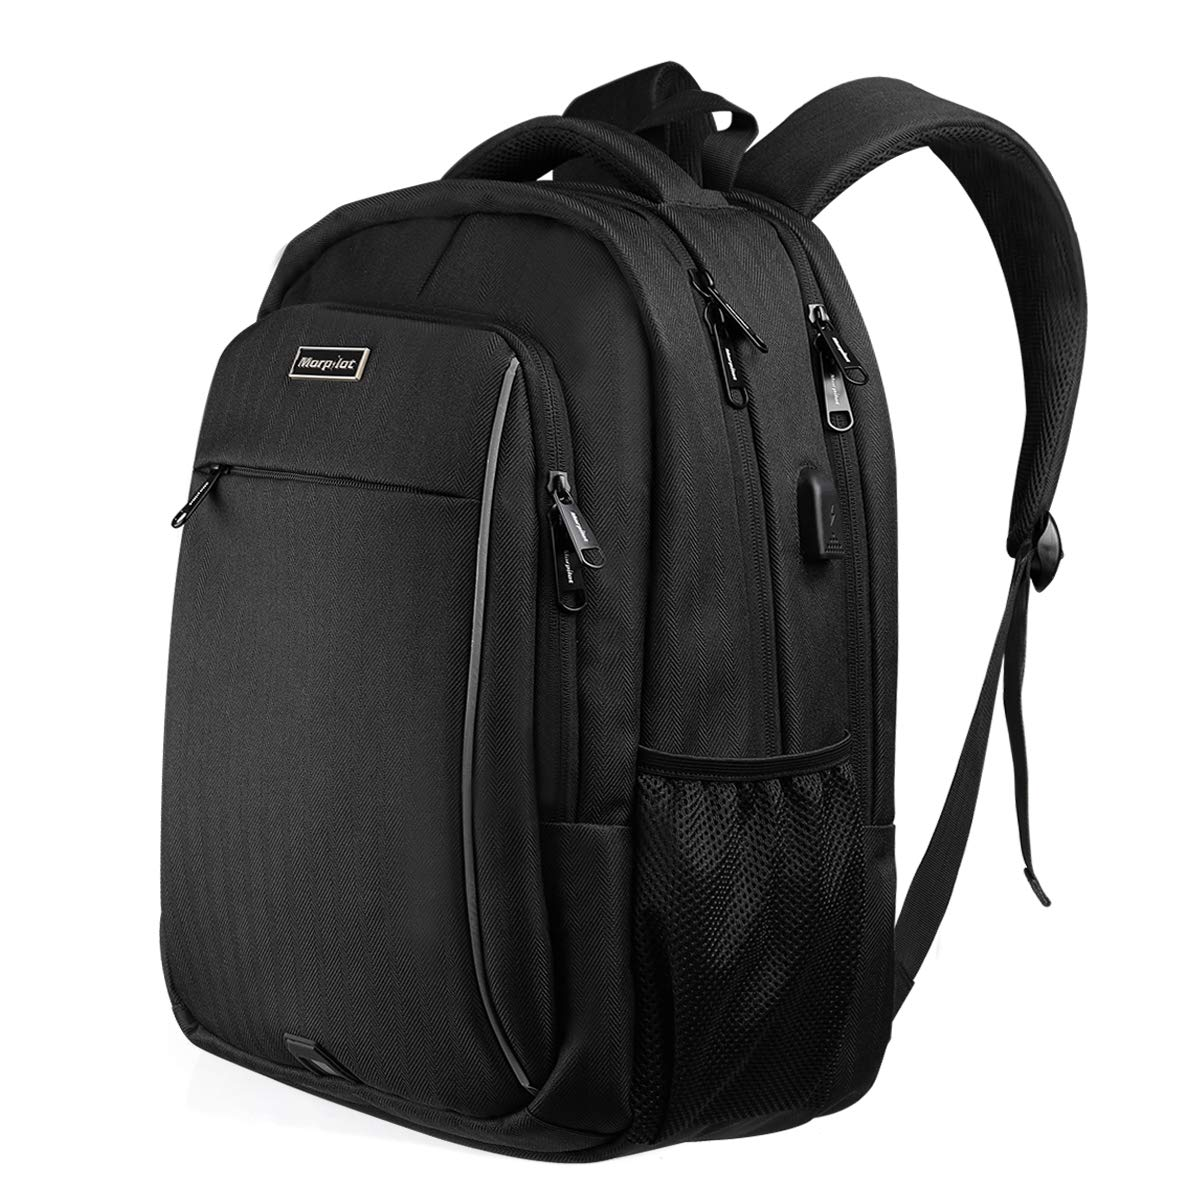 Great backpack for the price